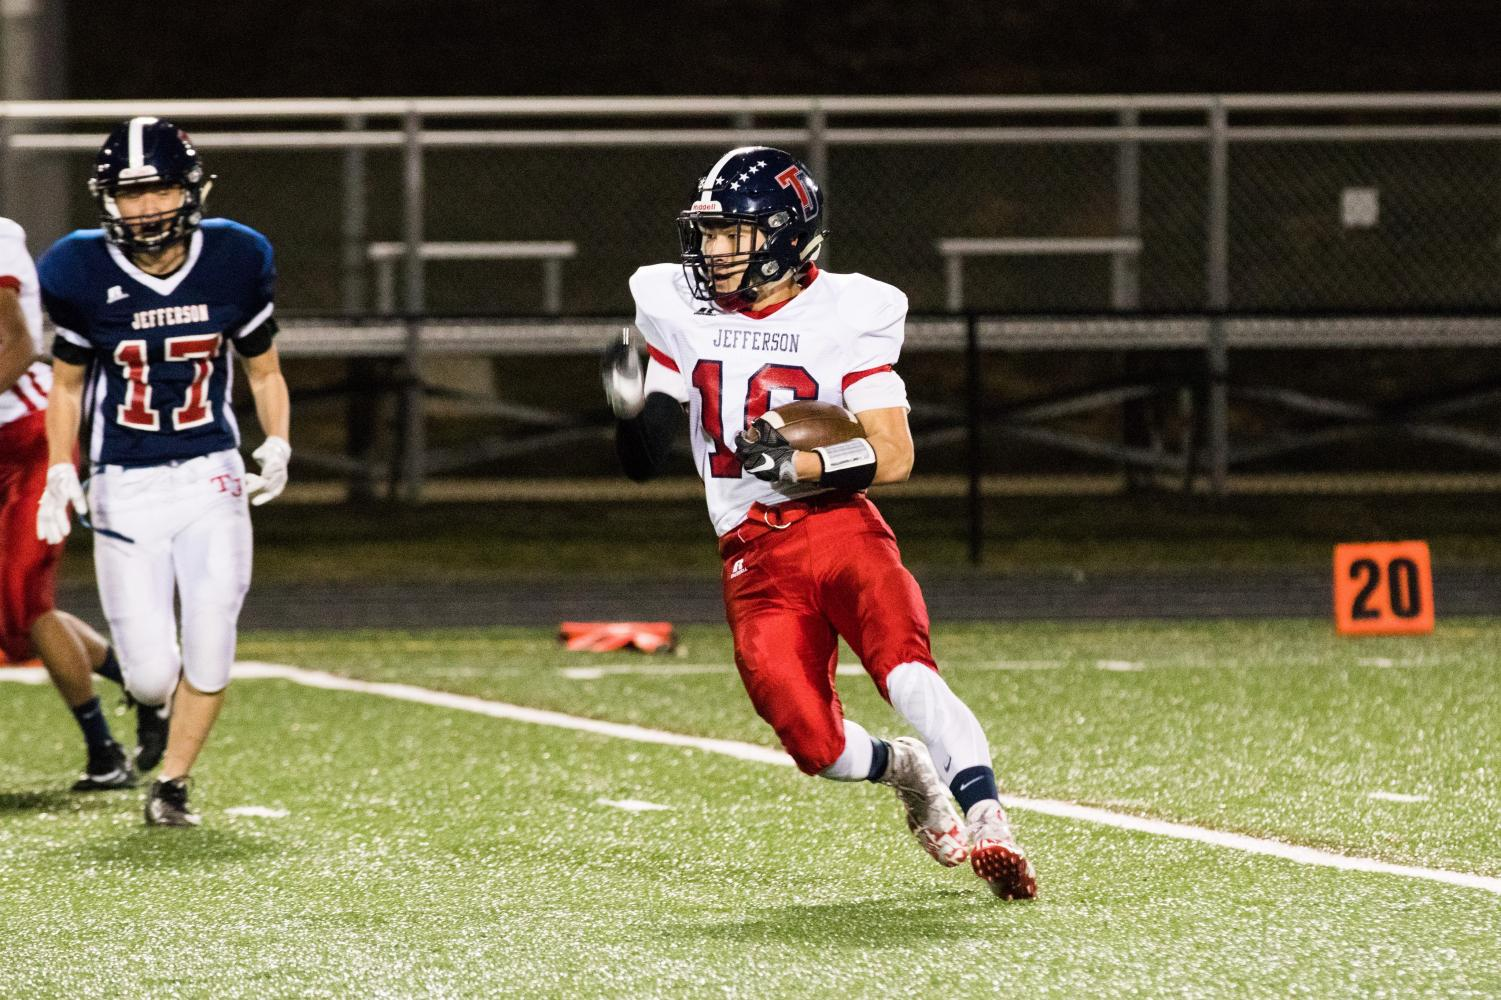 Junior Justin Kim makes a dash for the end zone, ball tucked in tightly under his arm, looking for a touchdown.